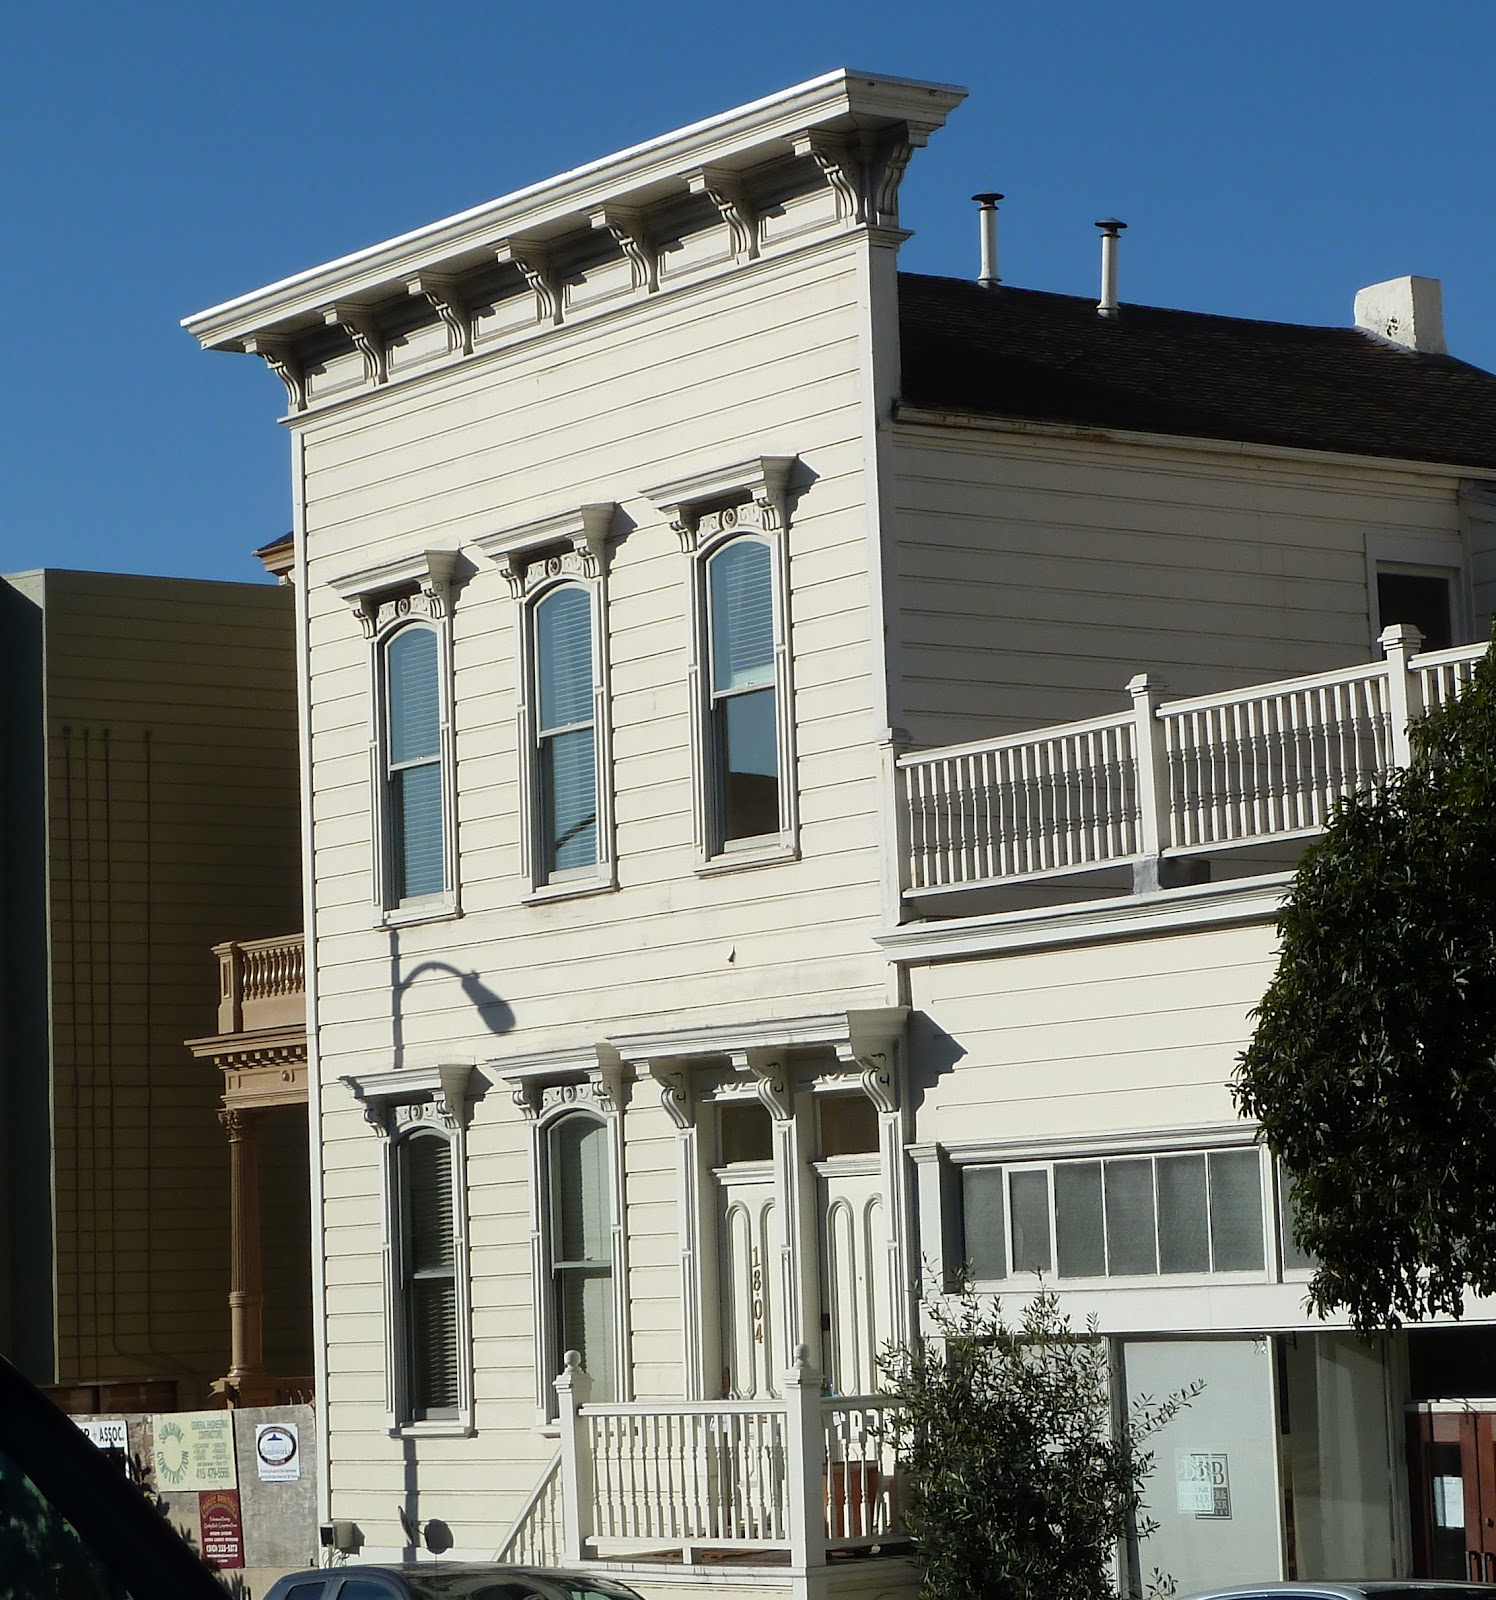 san francisco architecture: victorian to edwardian to post-modern